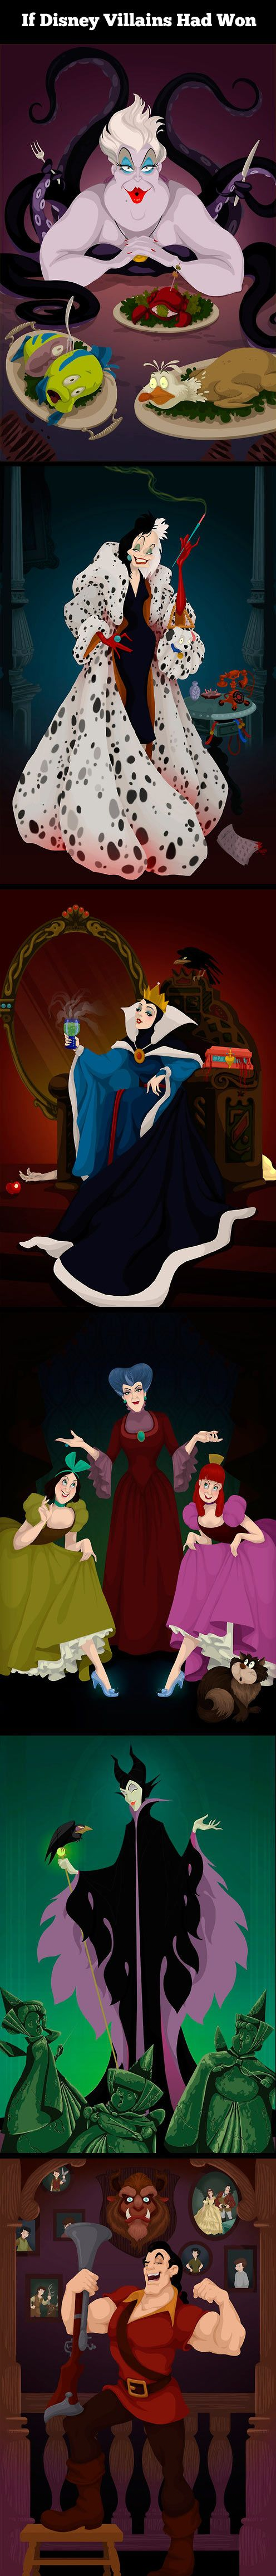 What would had happened if the Disney villains had won. Its weird to see pictures of Belle and Gaston's boys if beast had been slayed